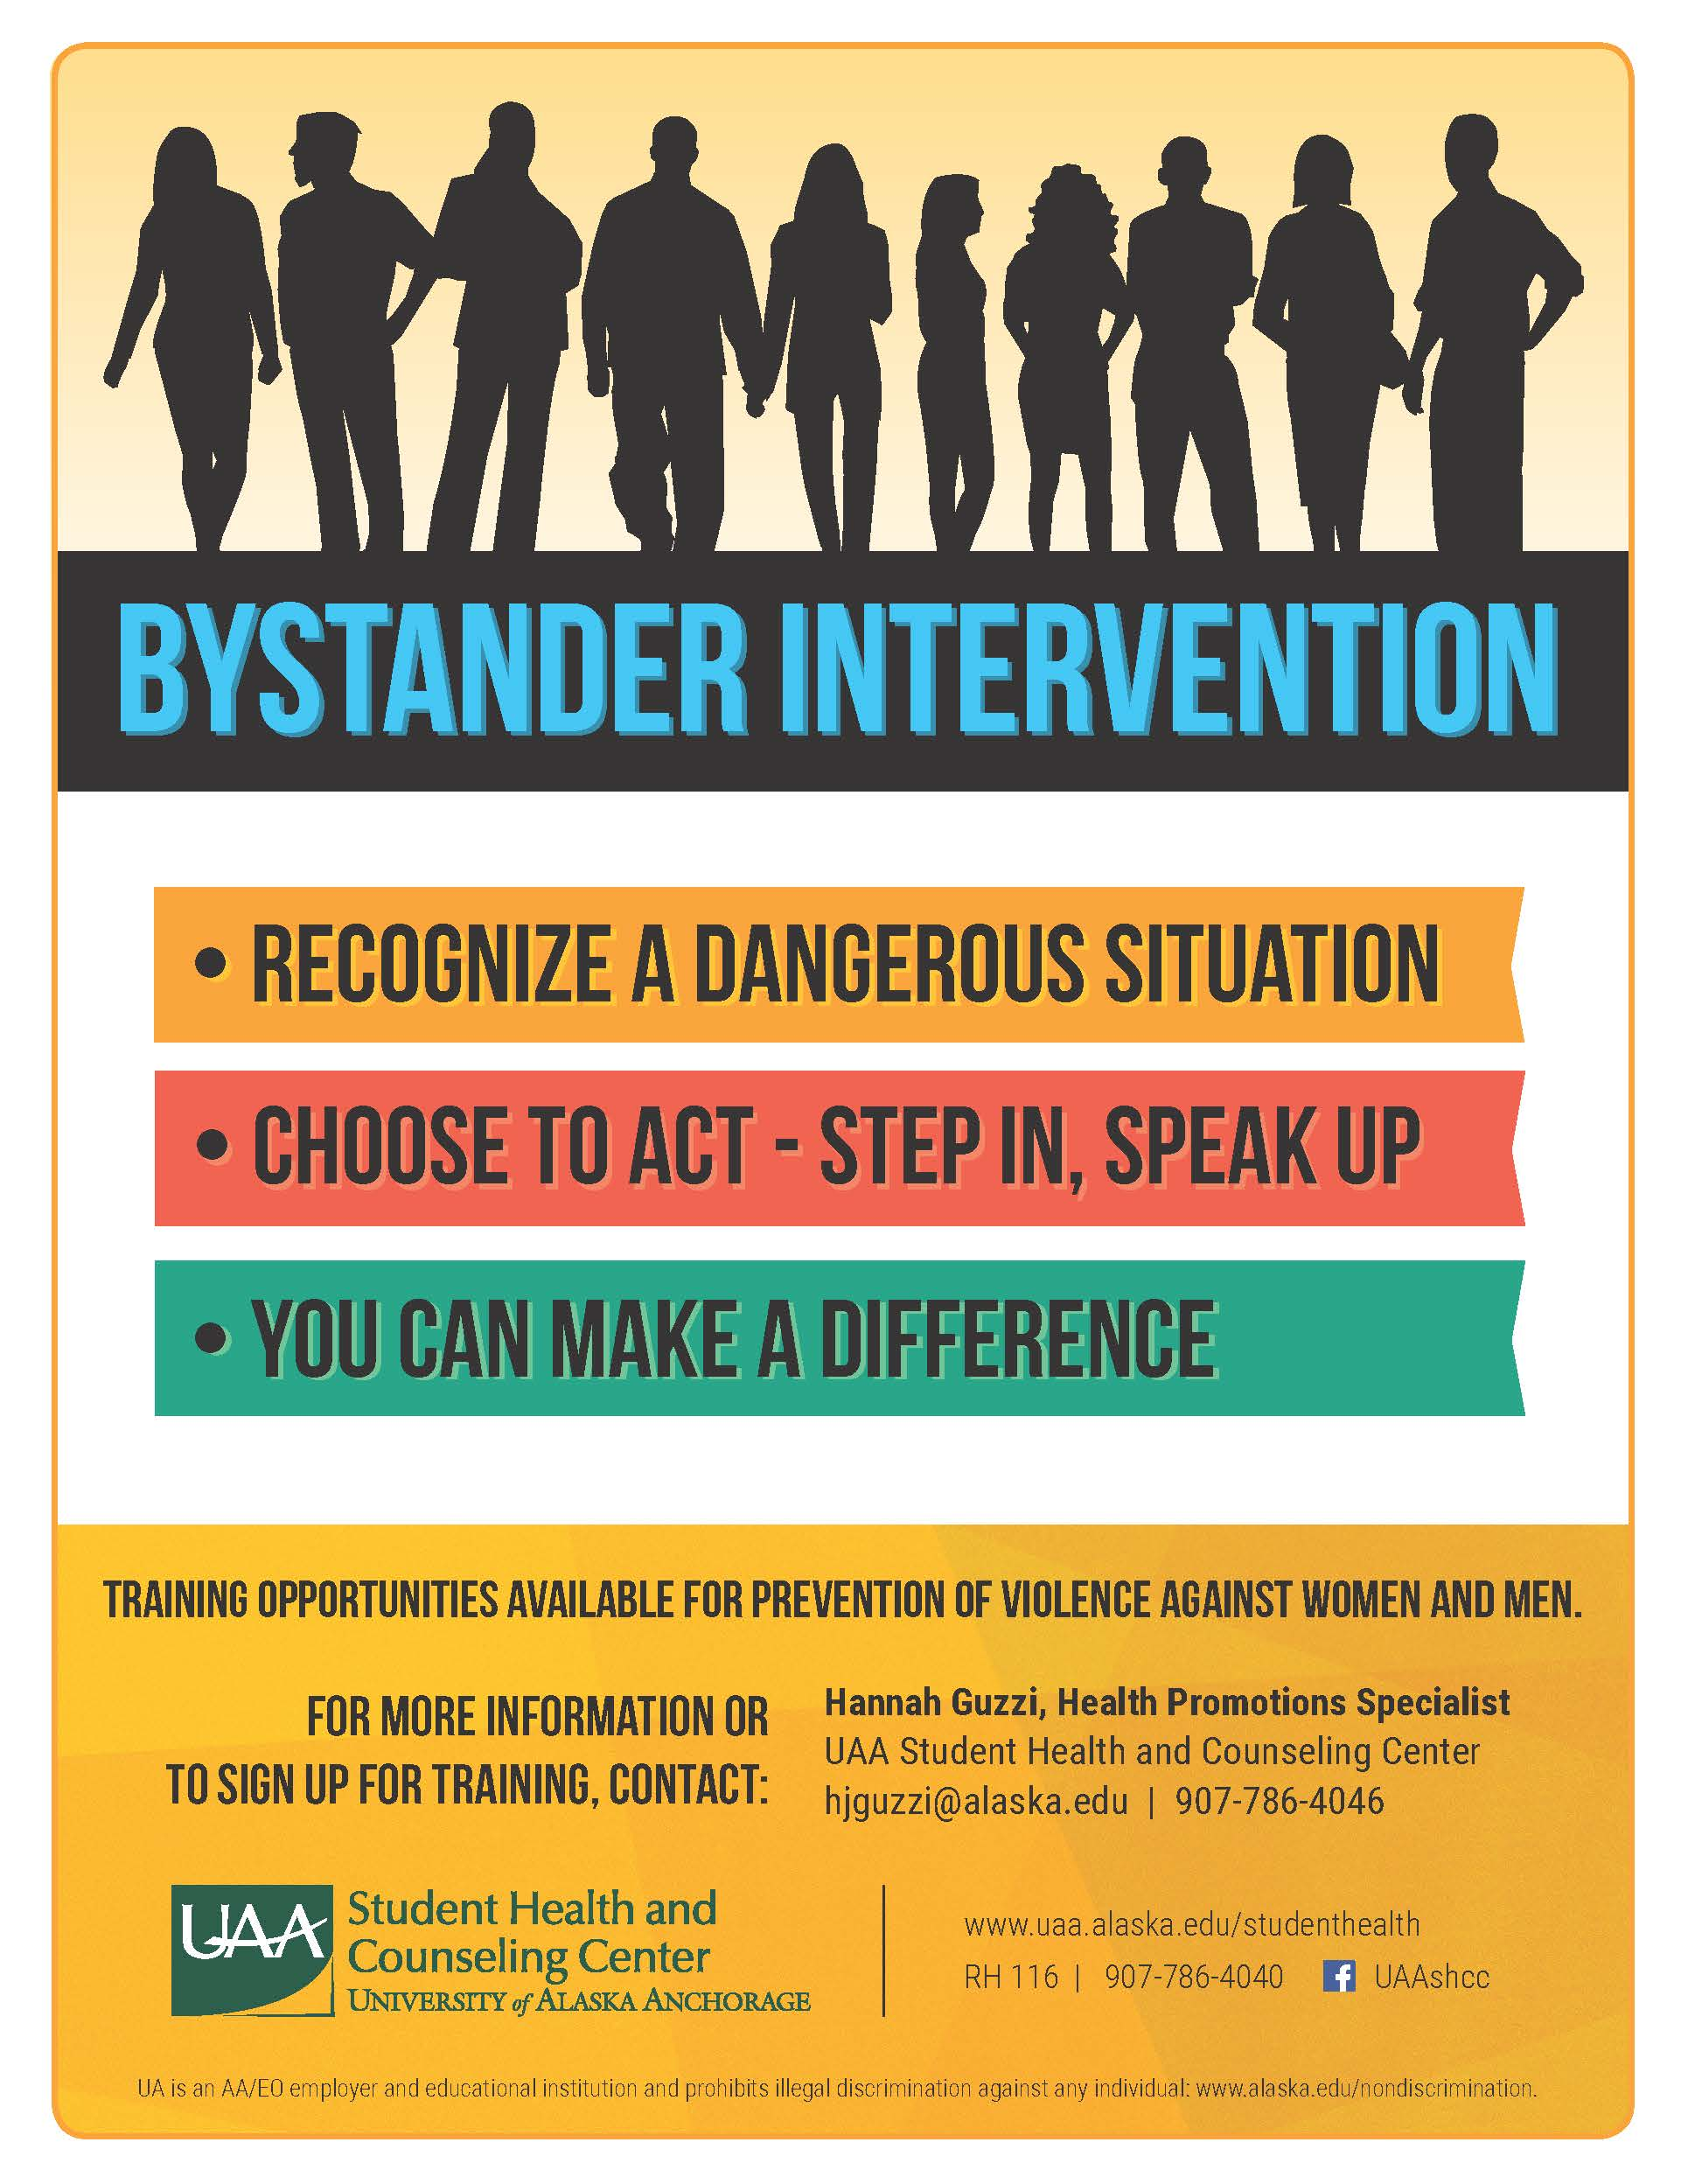 Bystander Intervention Training Contact Hannah Guzzi at 907-786-4046 or hjguzzi@alaska.edu to schedule a training.